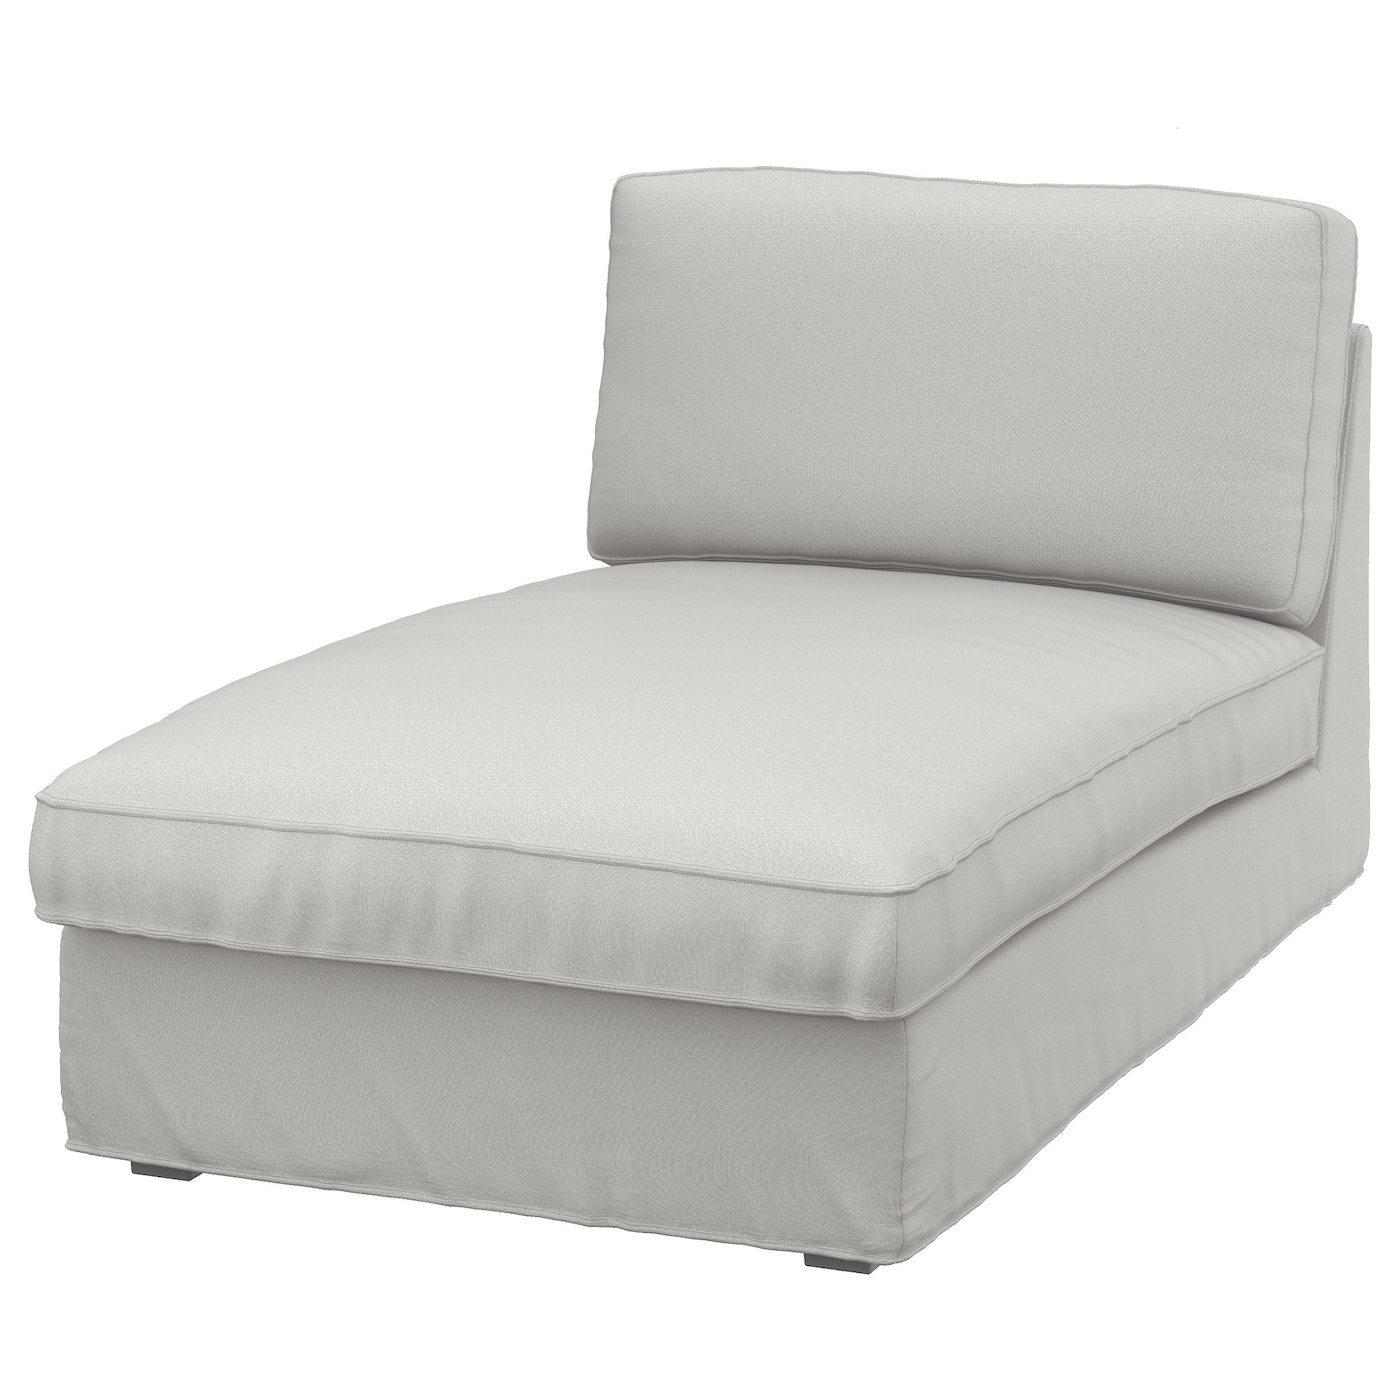 Kivik chaise longue ramna light grey ikea - Chaise longue jardin ikea ...